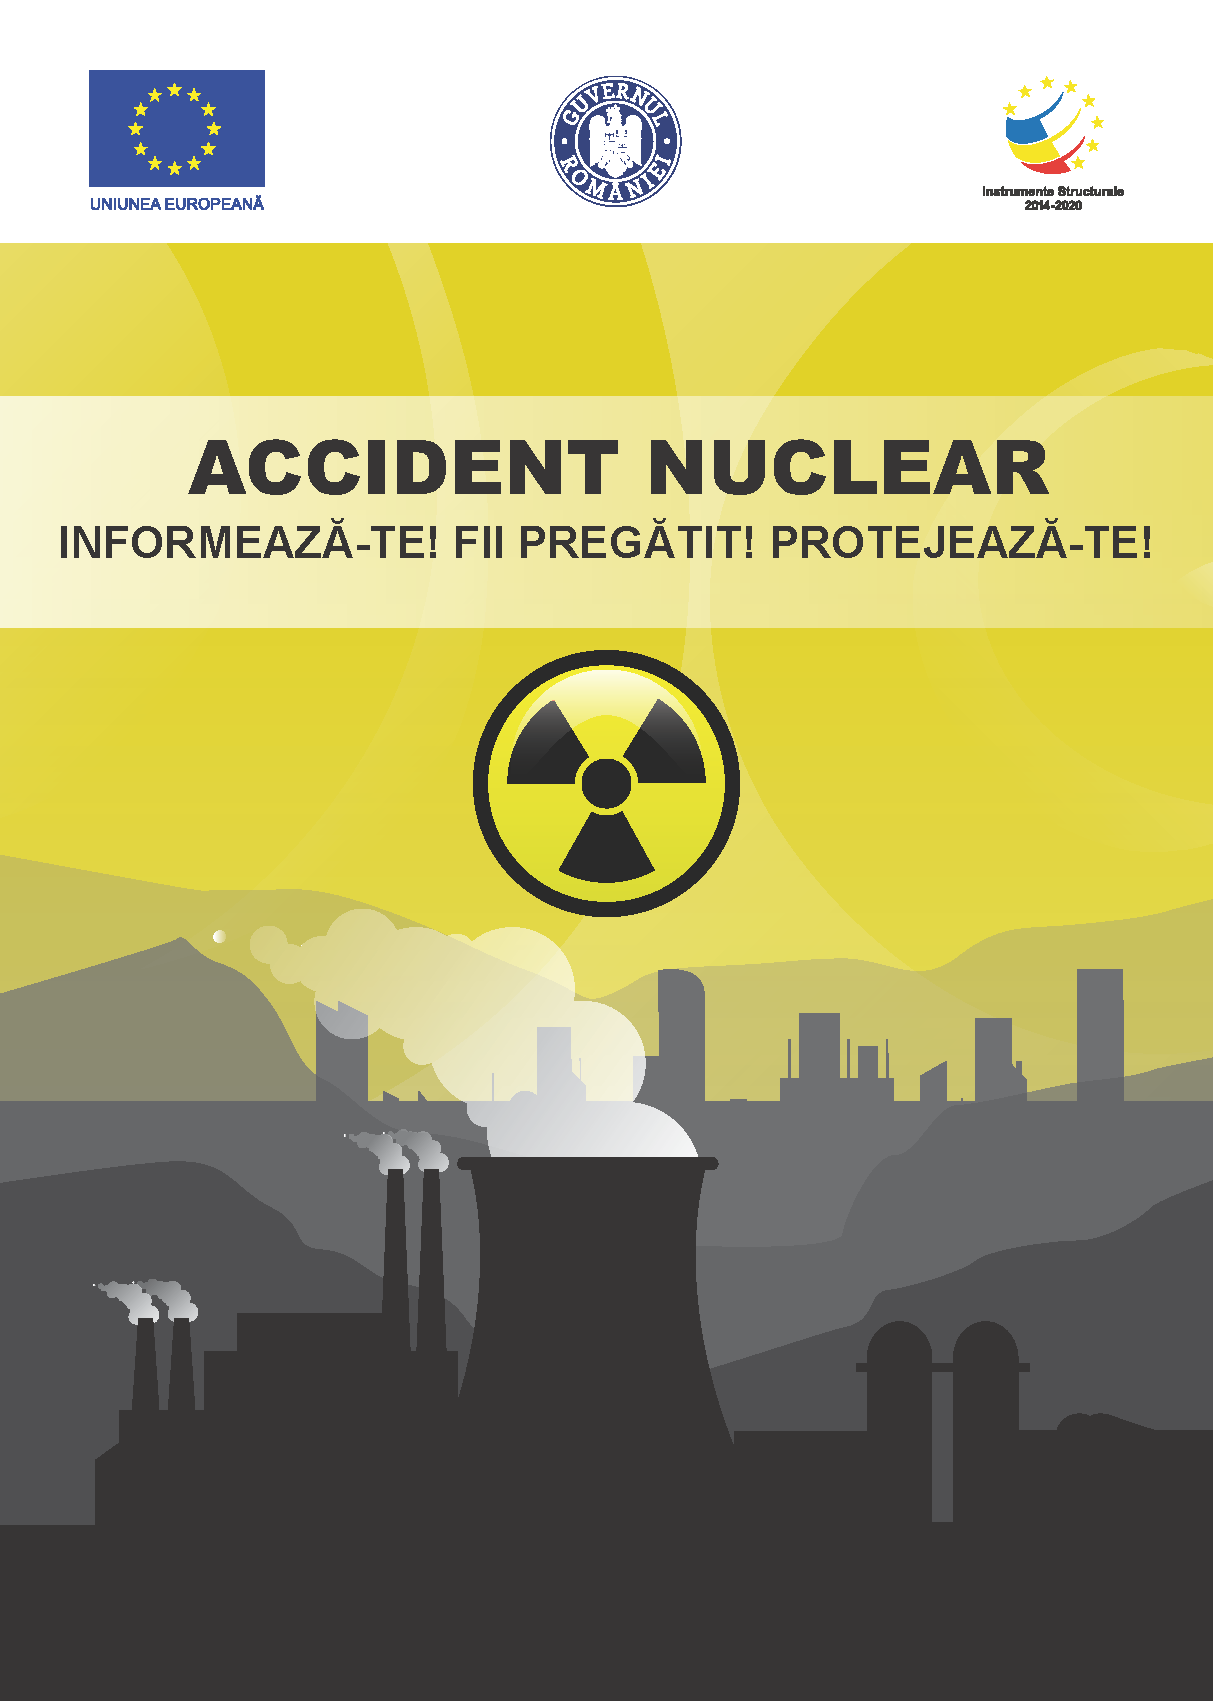 Accident nuclear F